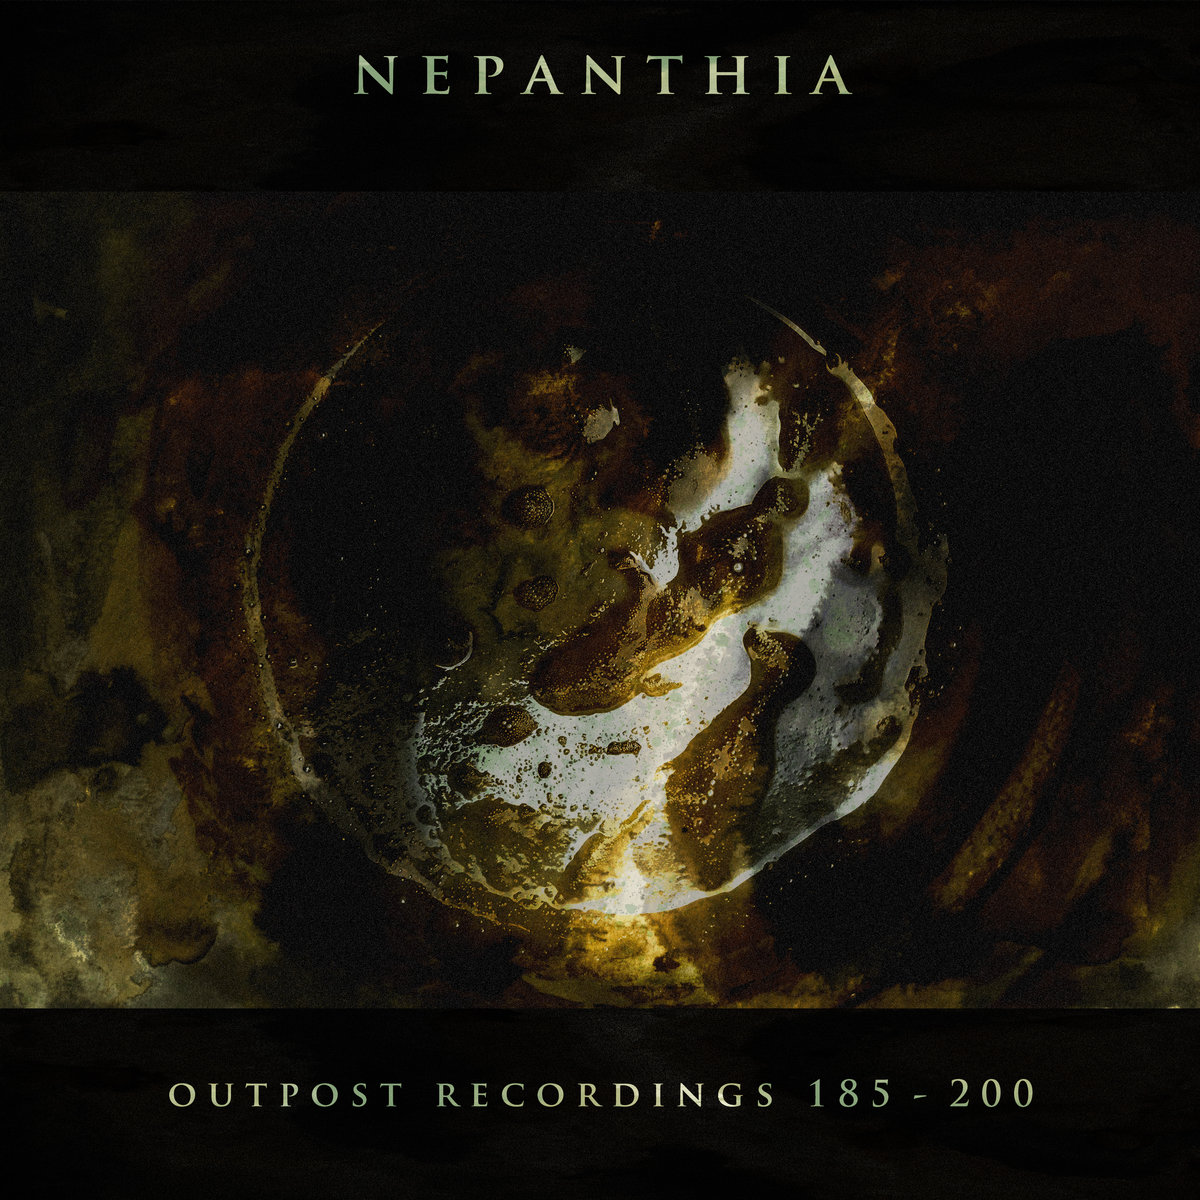 NEPATHIA - OUTPOST RECORDINGS 185 - 200